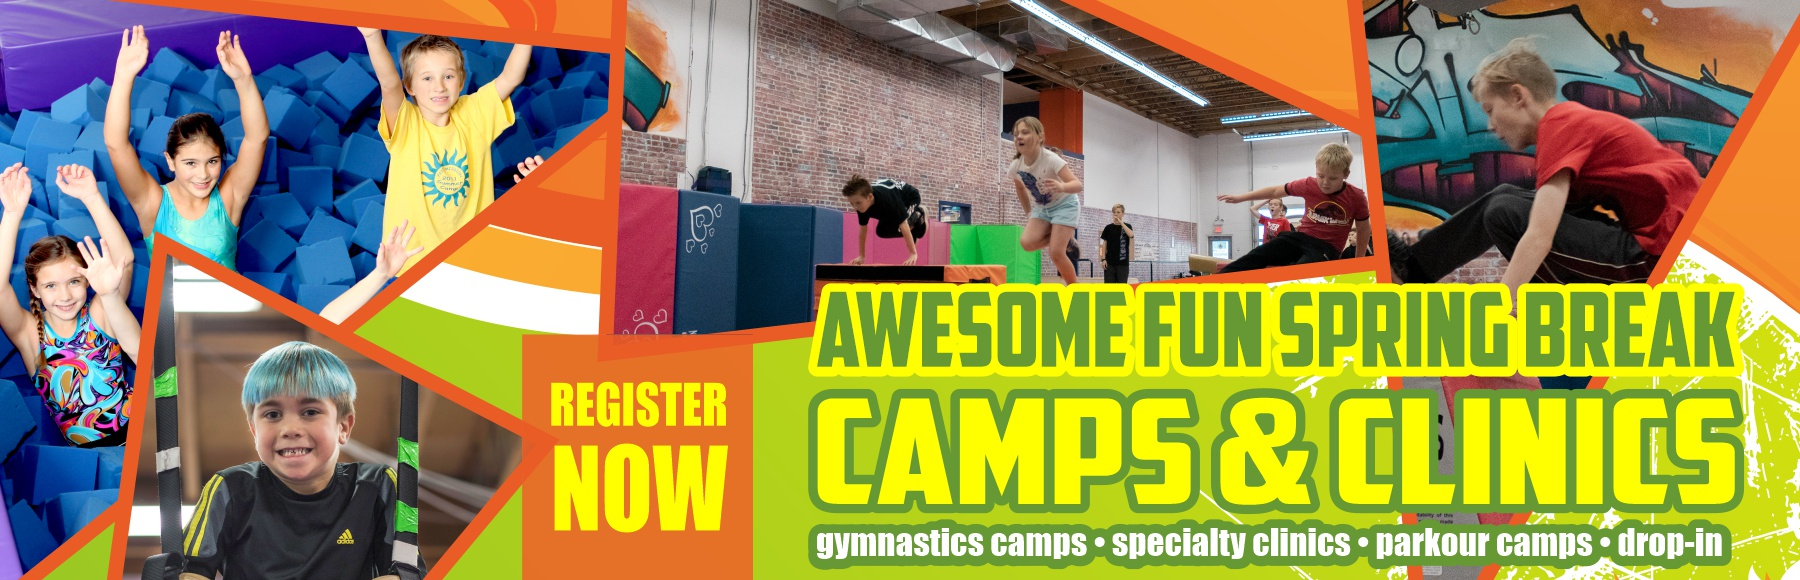 Kelowna gymnastics spring break camps